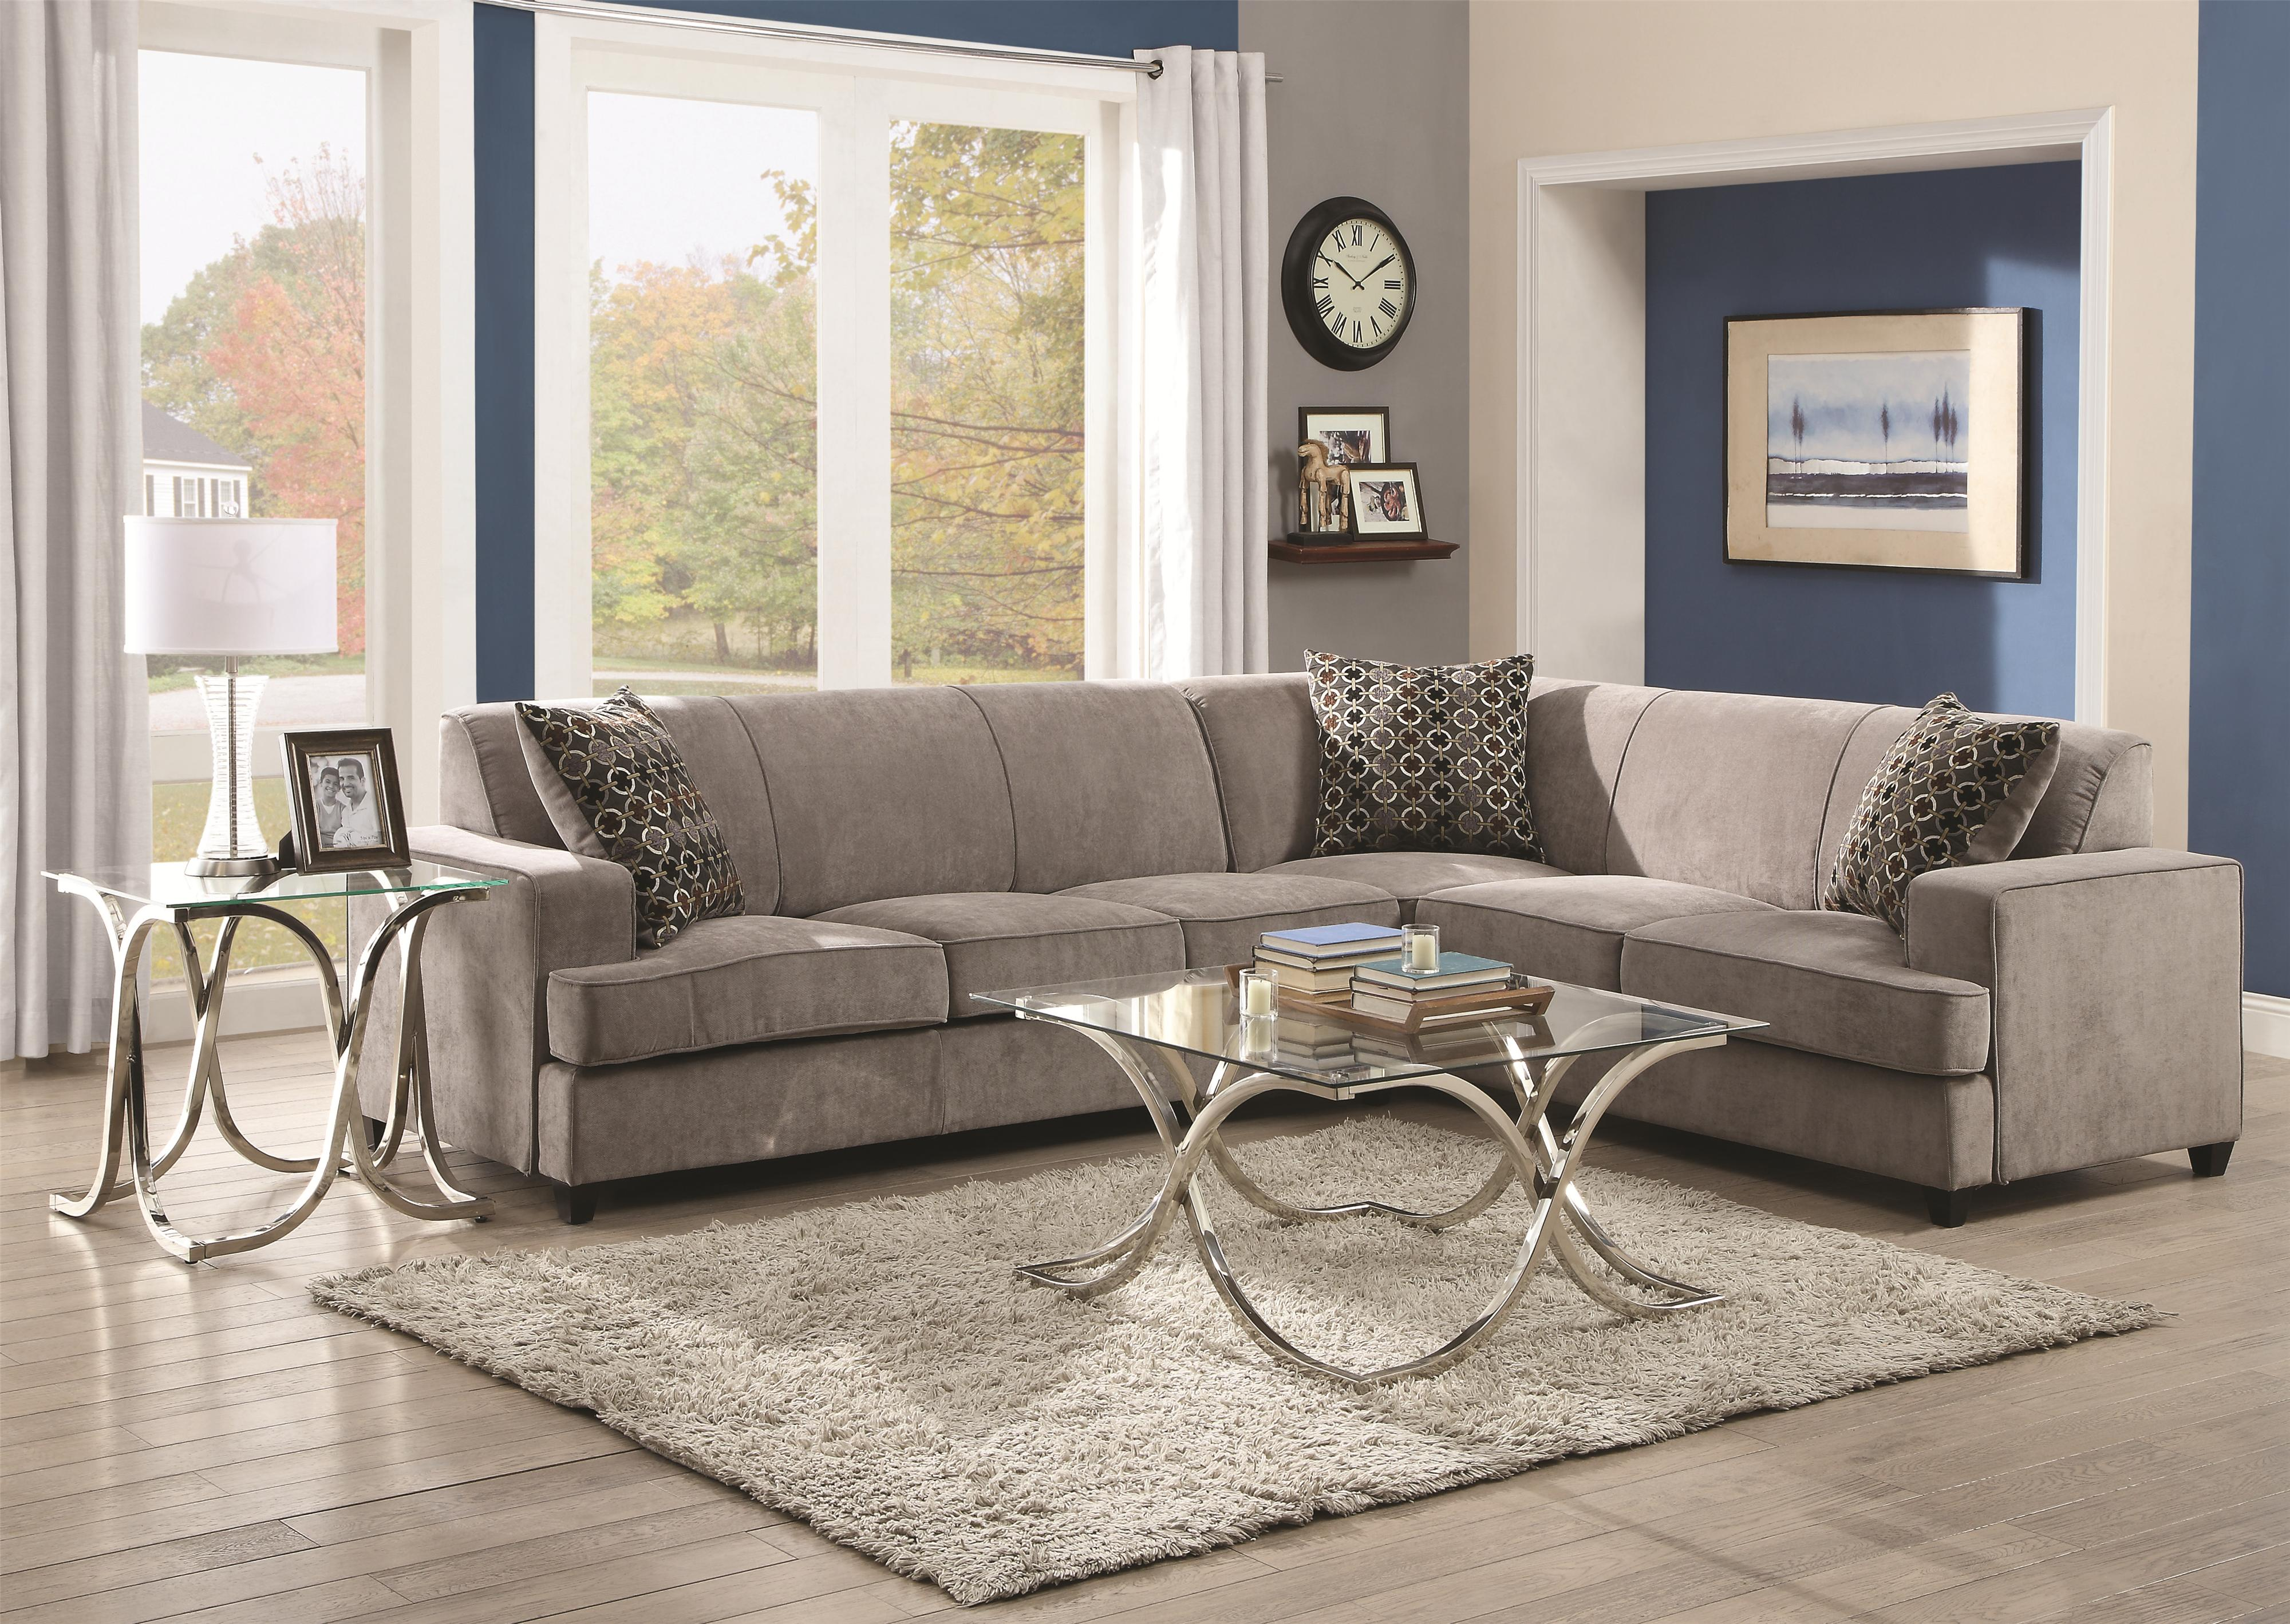 Coaster Tess Sleeper Sectional Dallas Tx Living Room Sectional